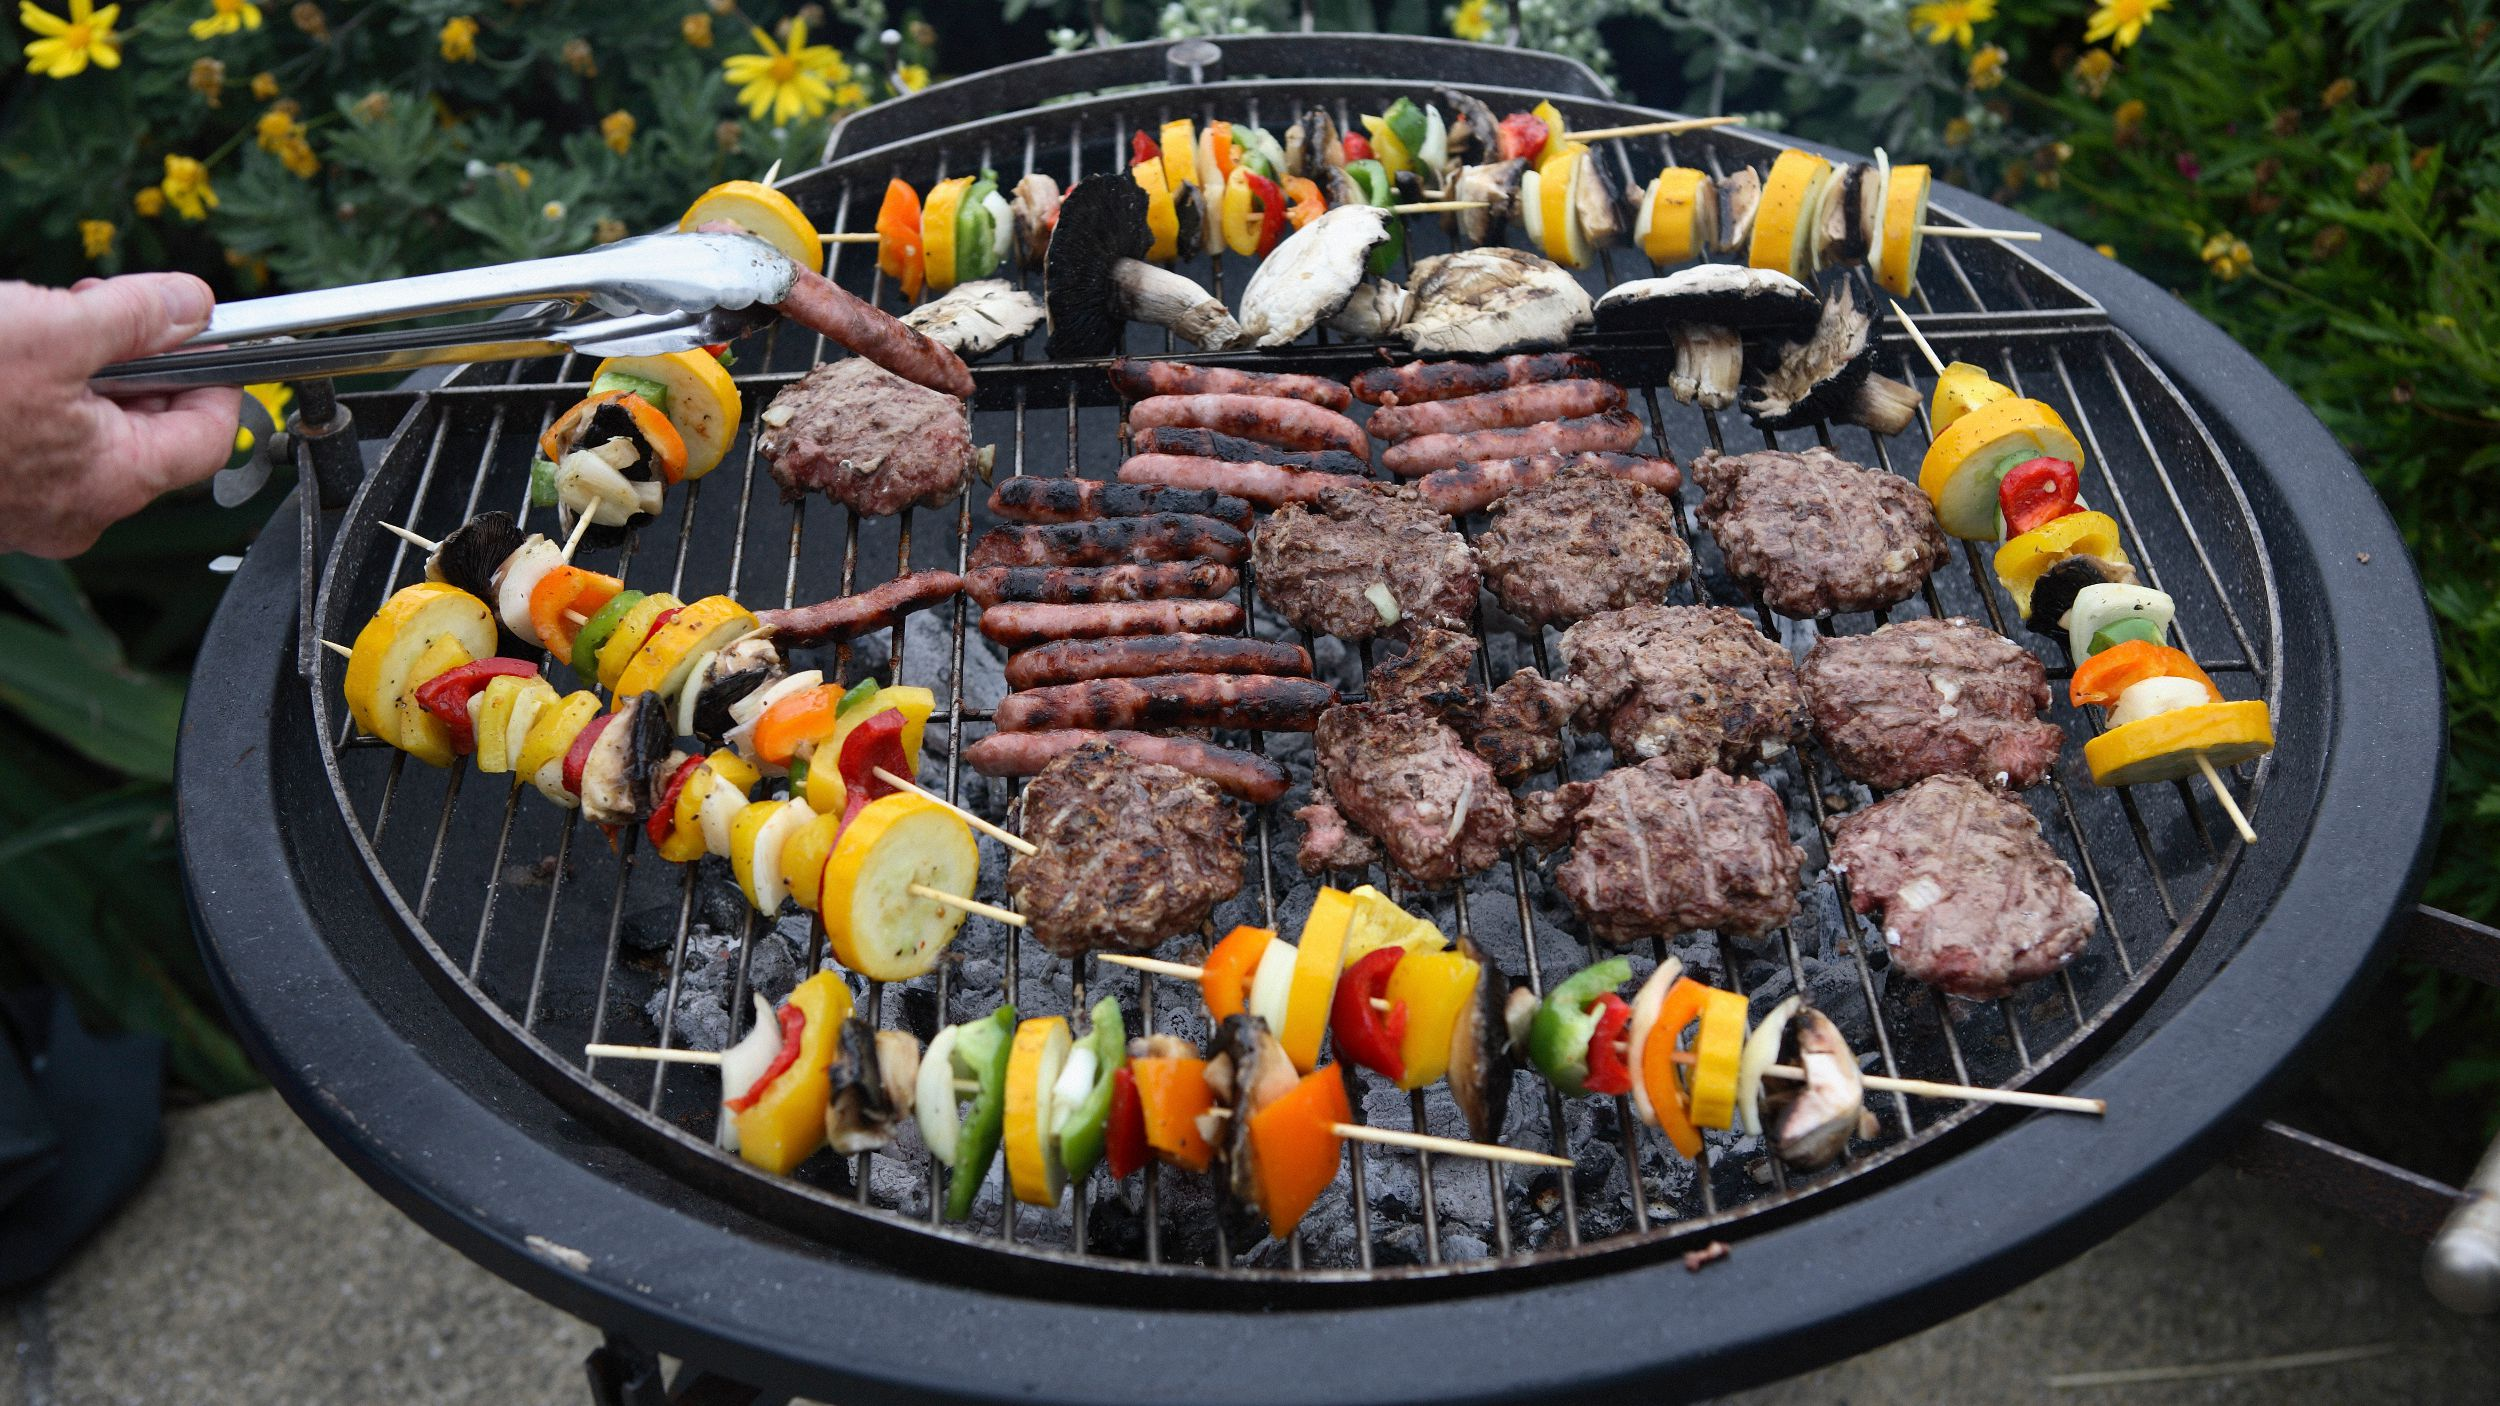 8 Tips To Help You Master Your Charcoal Grill